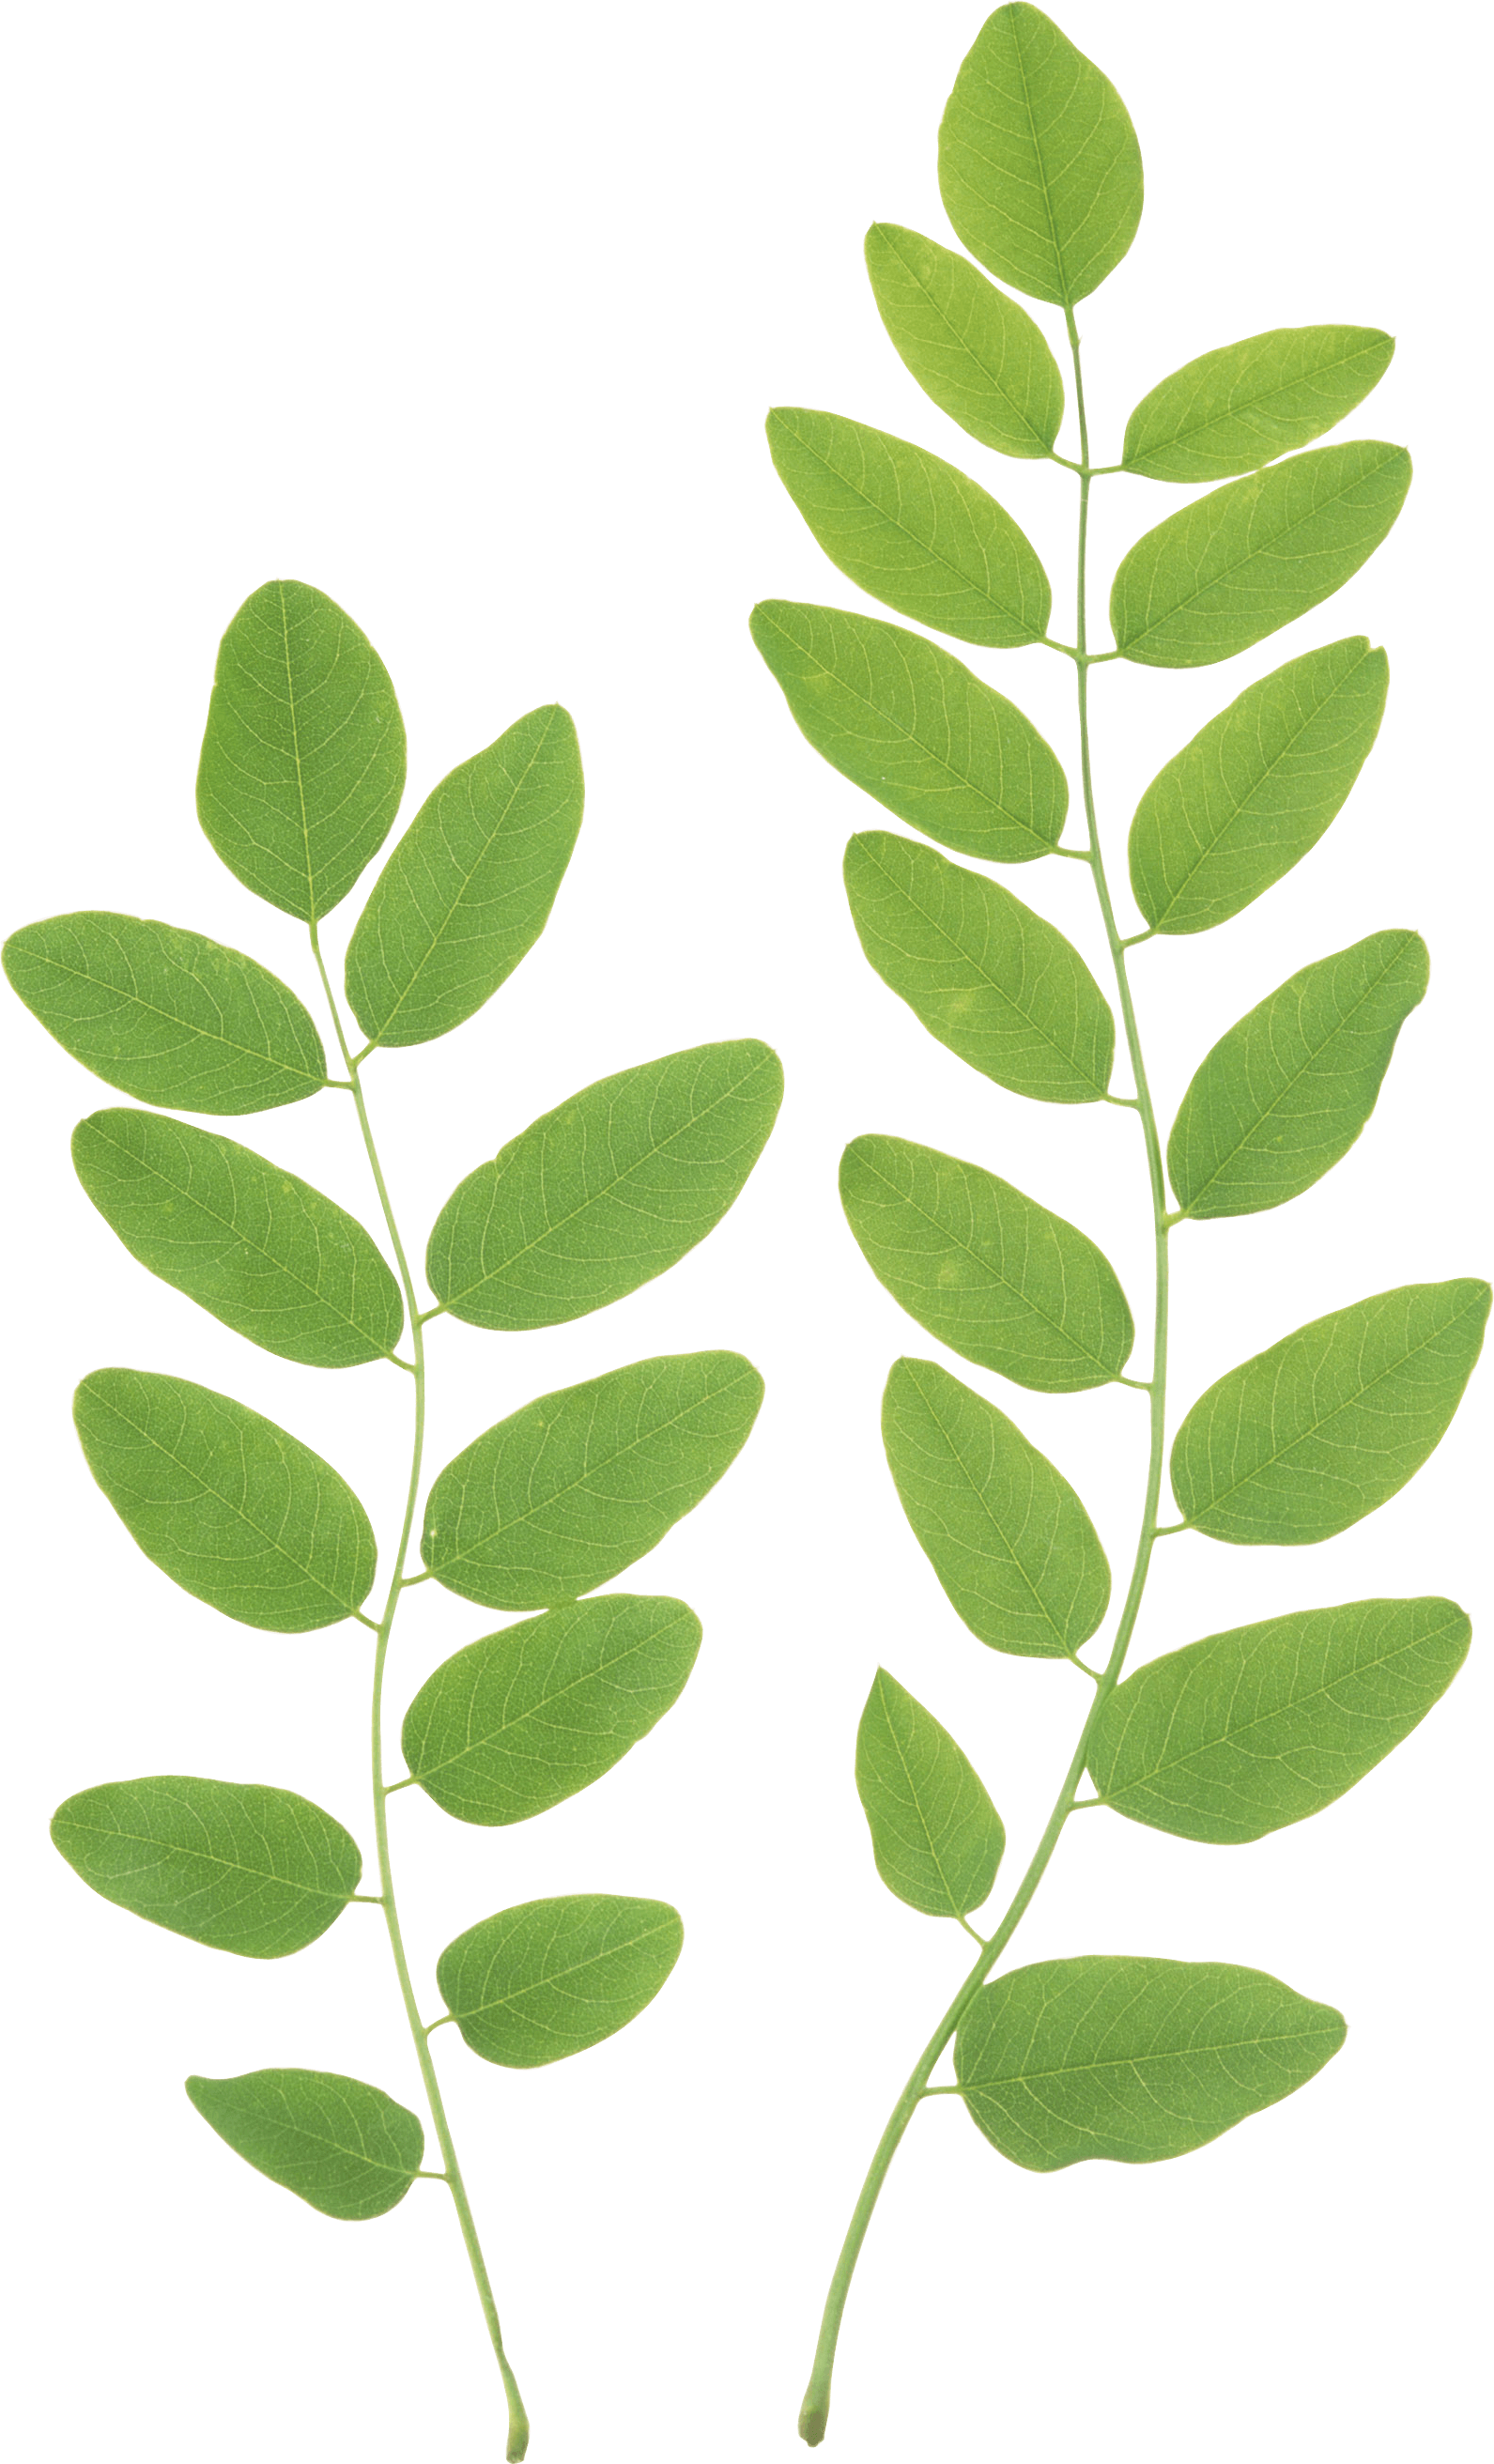 Green Leaves Png Clipart - Leaves, Transparent background PNG HD thumbnail